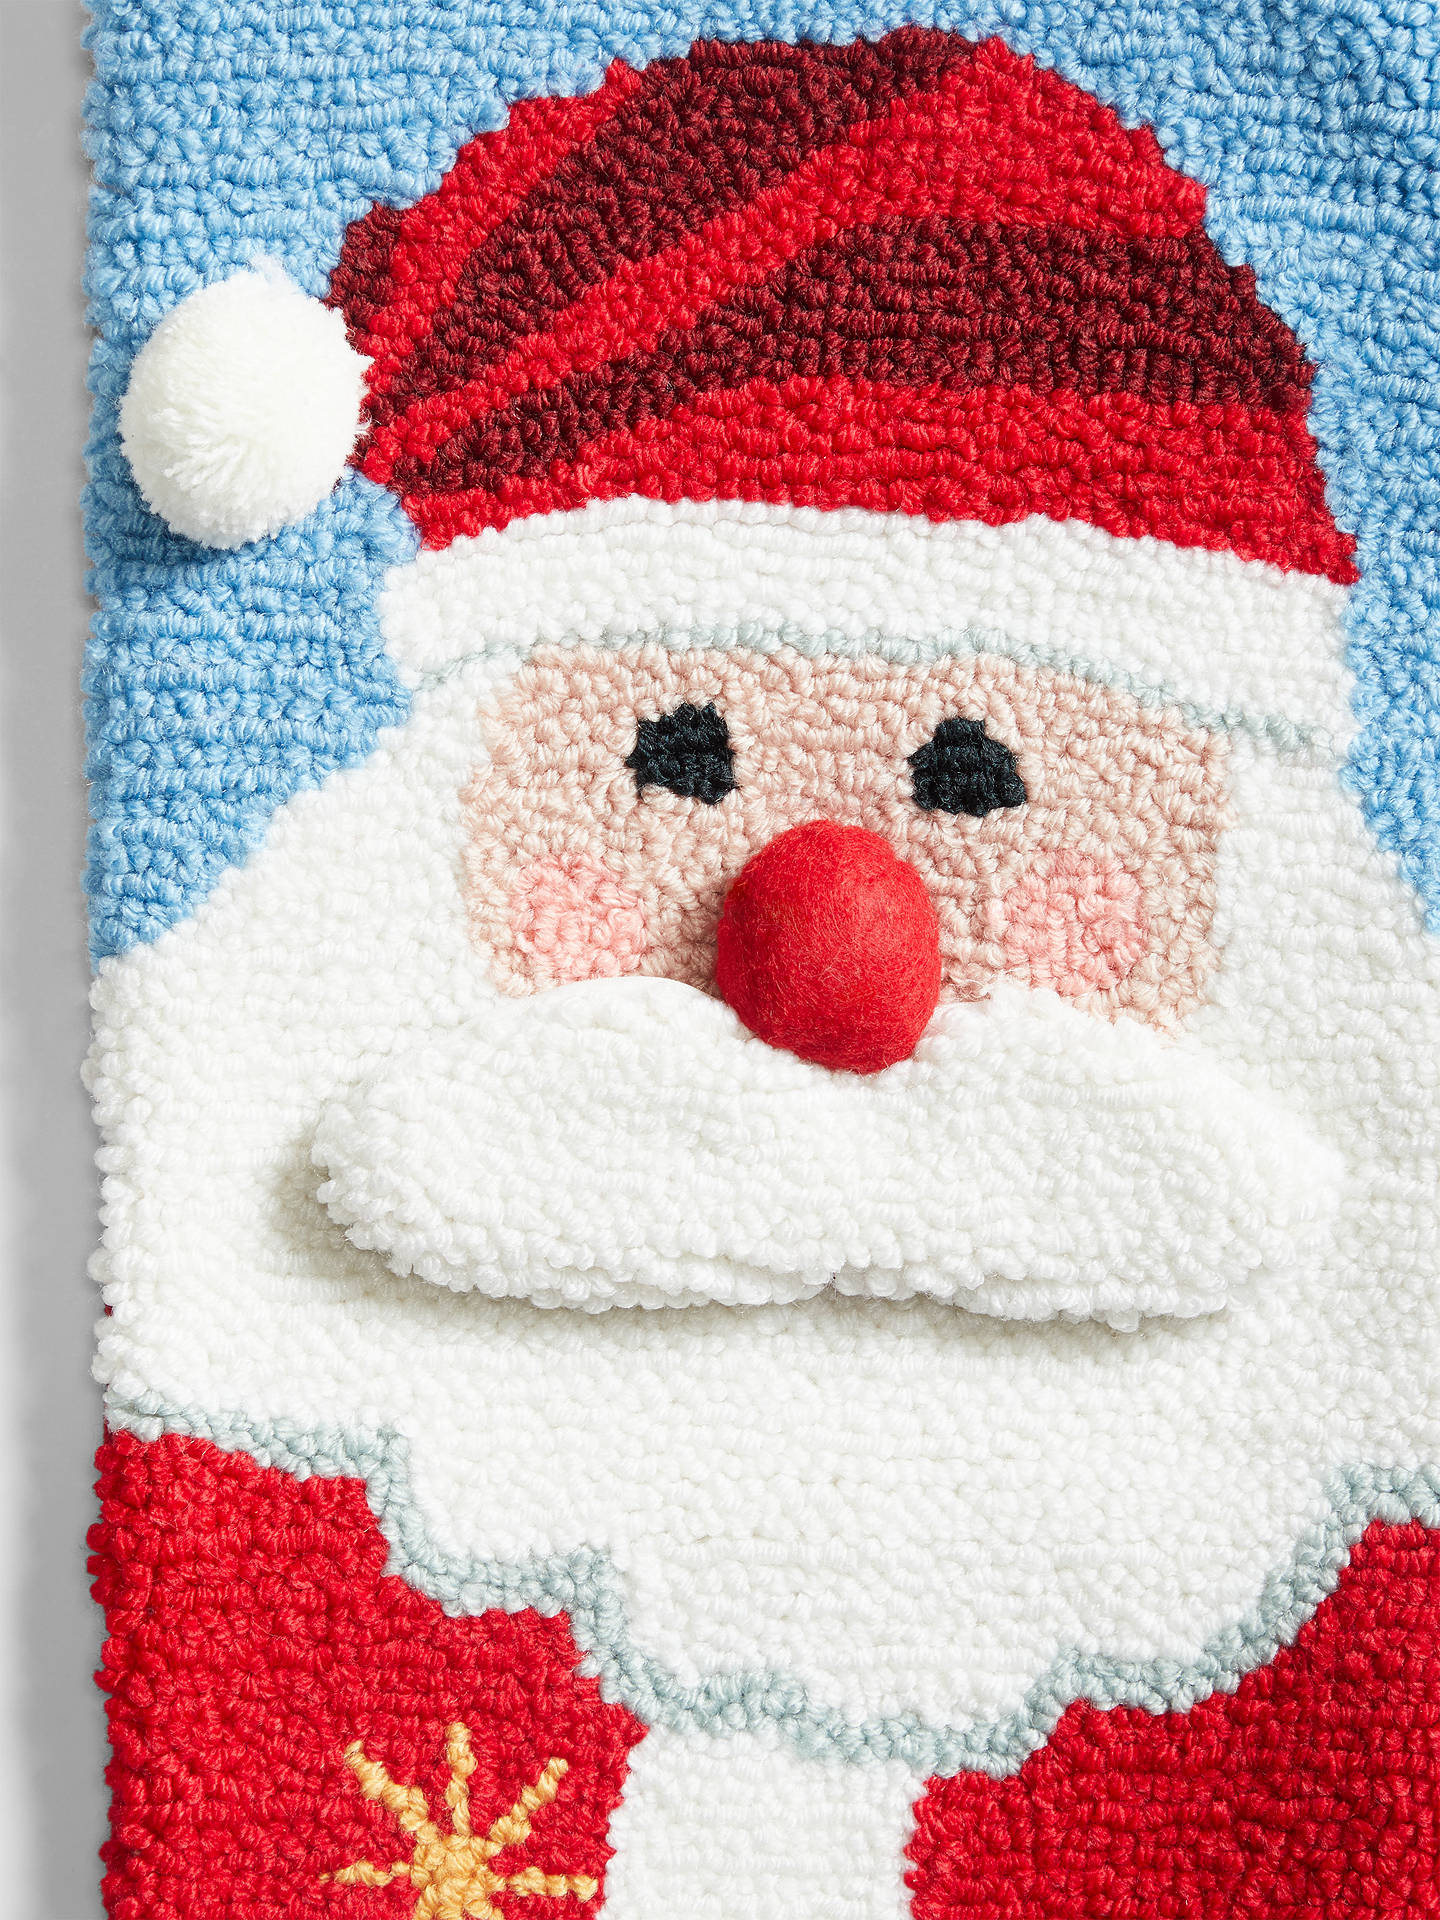 Buy John Lewis & Partners ABC Boucle Santa Christmas Stocking, Multi Online at johnlewis.com